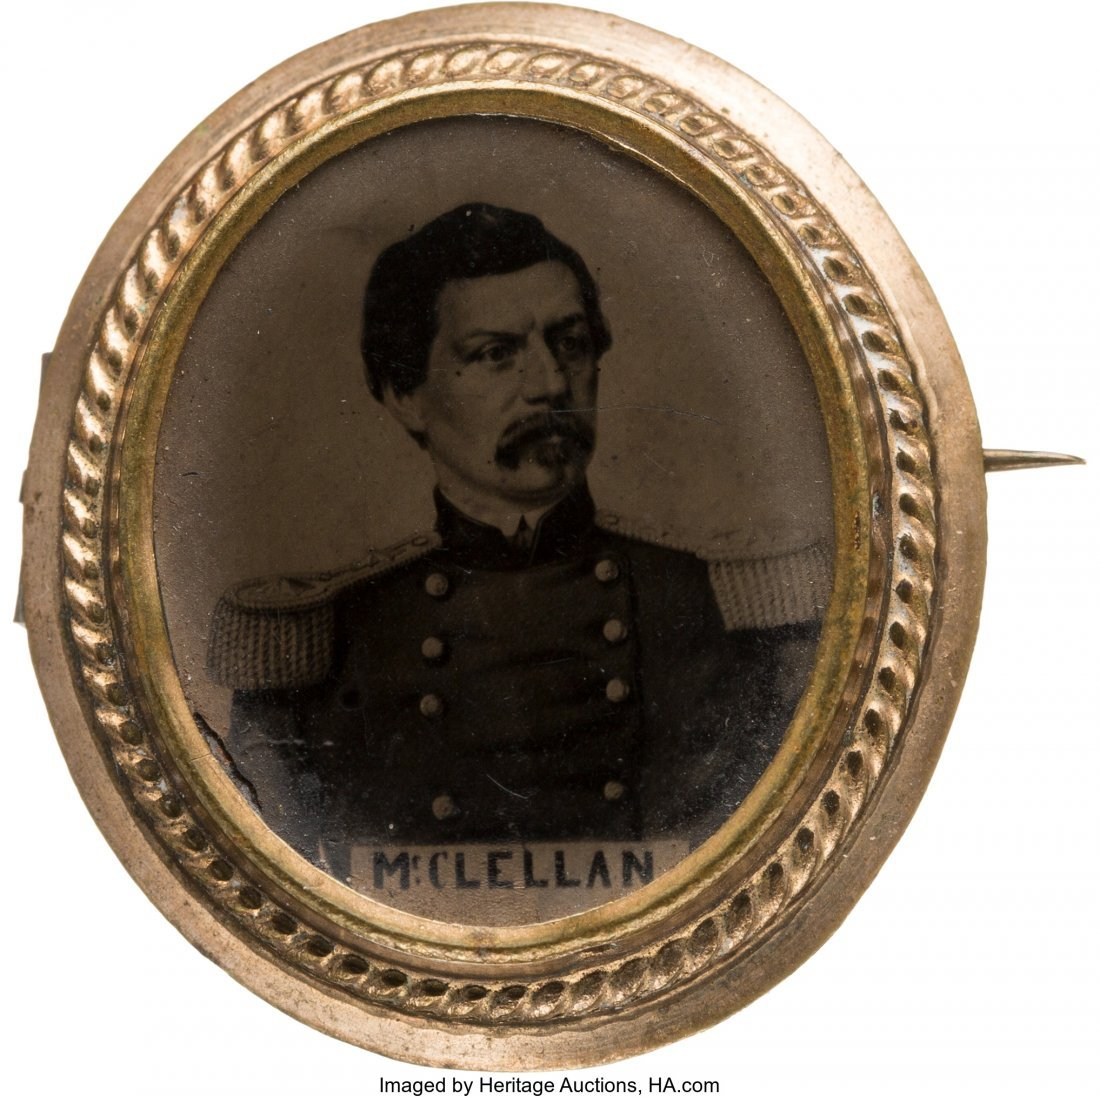 43223: George B. McClellan: Unlisted Ferrotype Brooch.